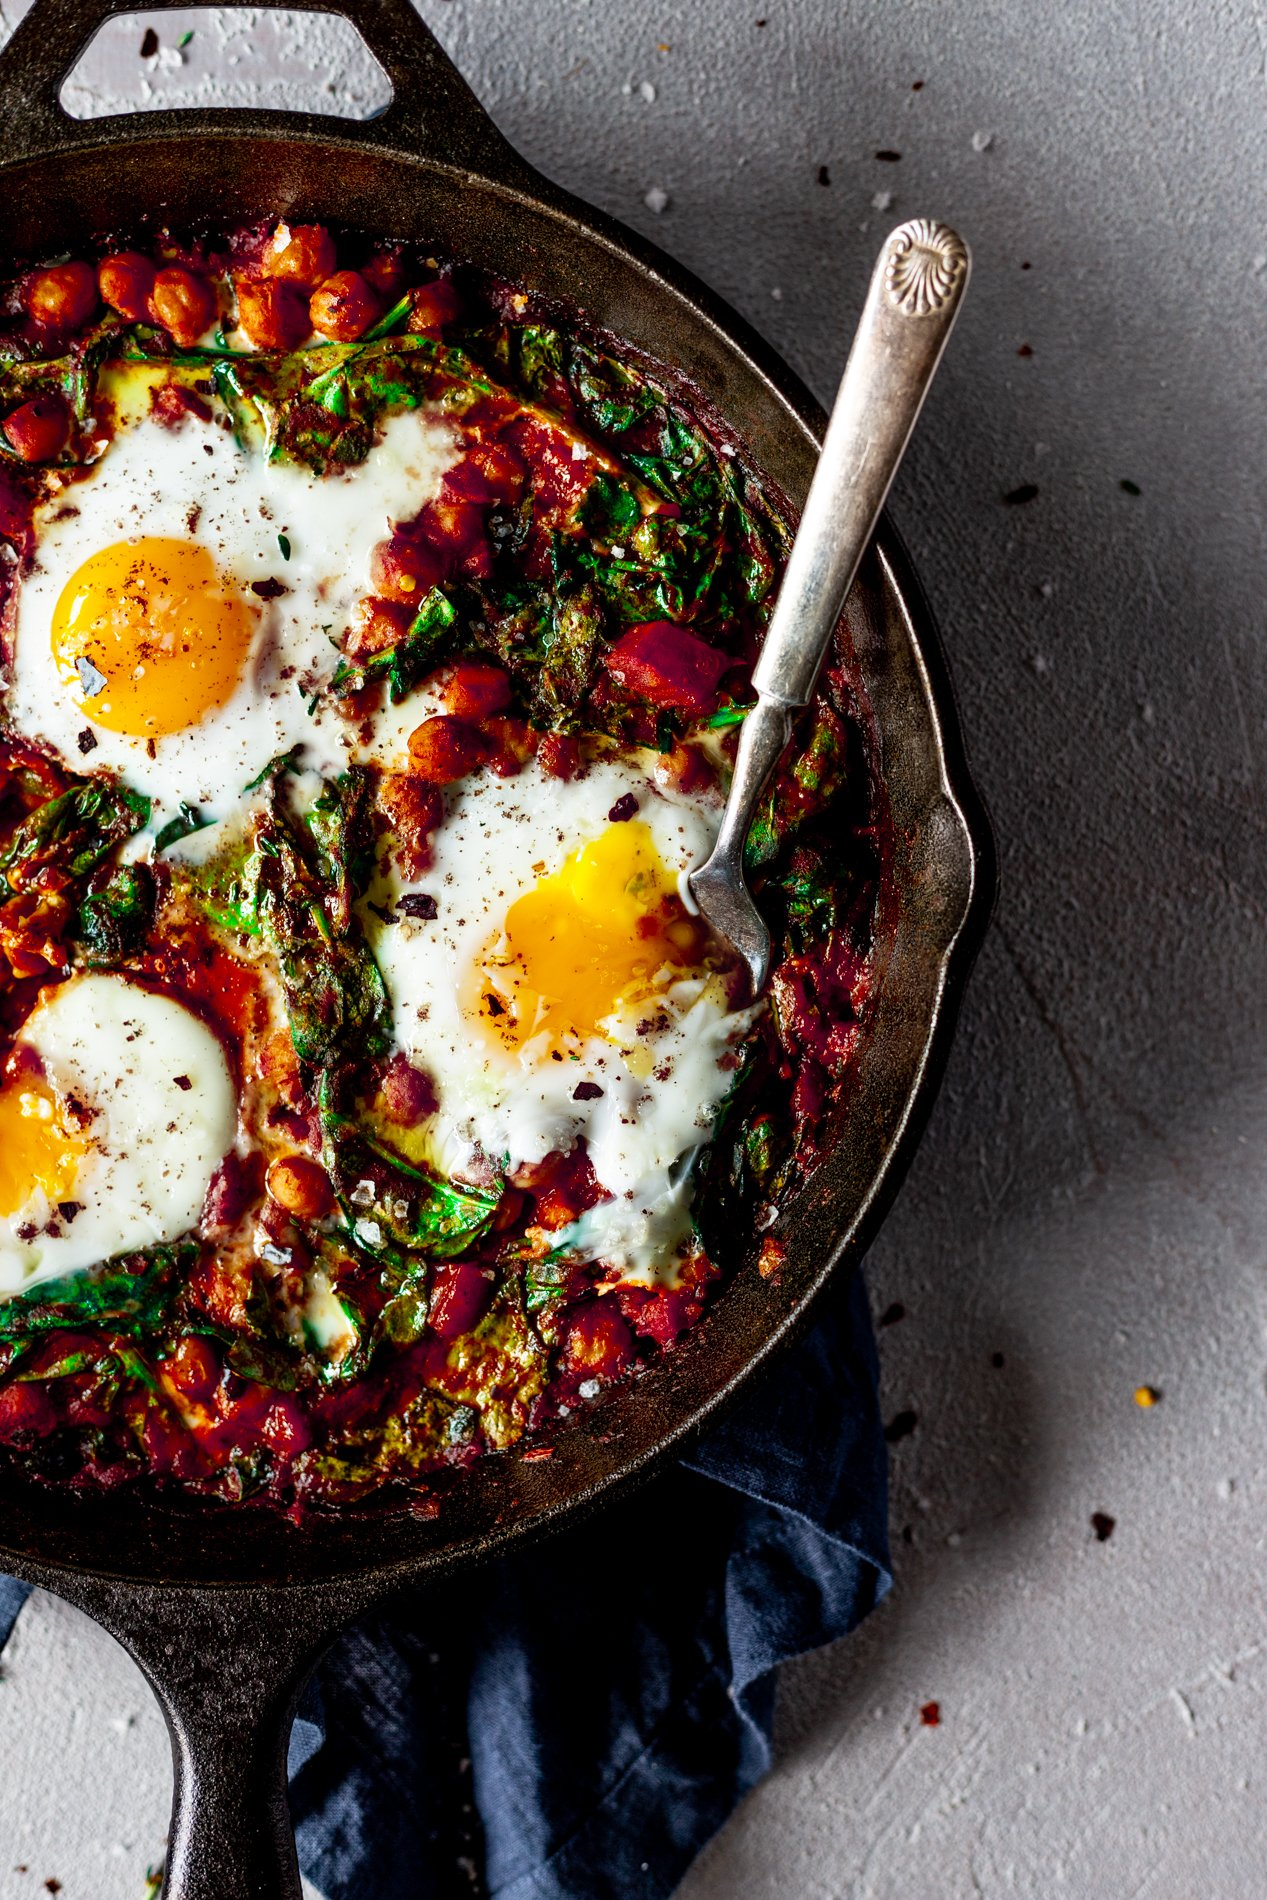 closeup overhead view of a skillet with harissa baked eggs with a fork popping one runny yolk